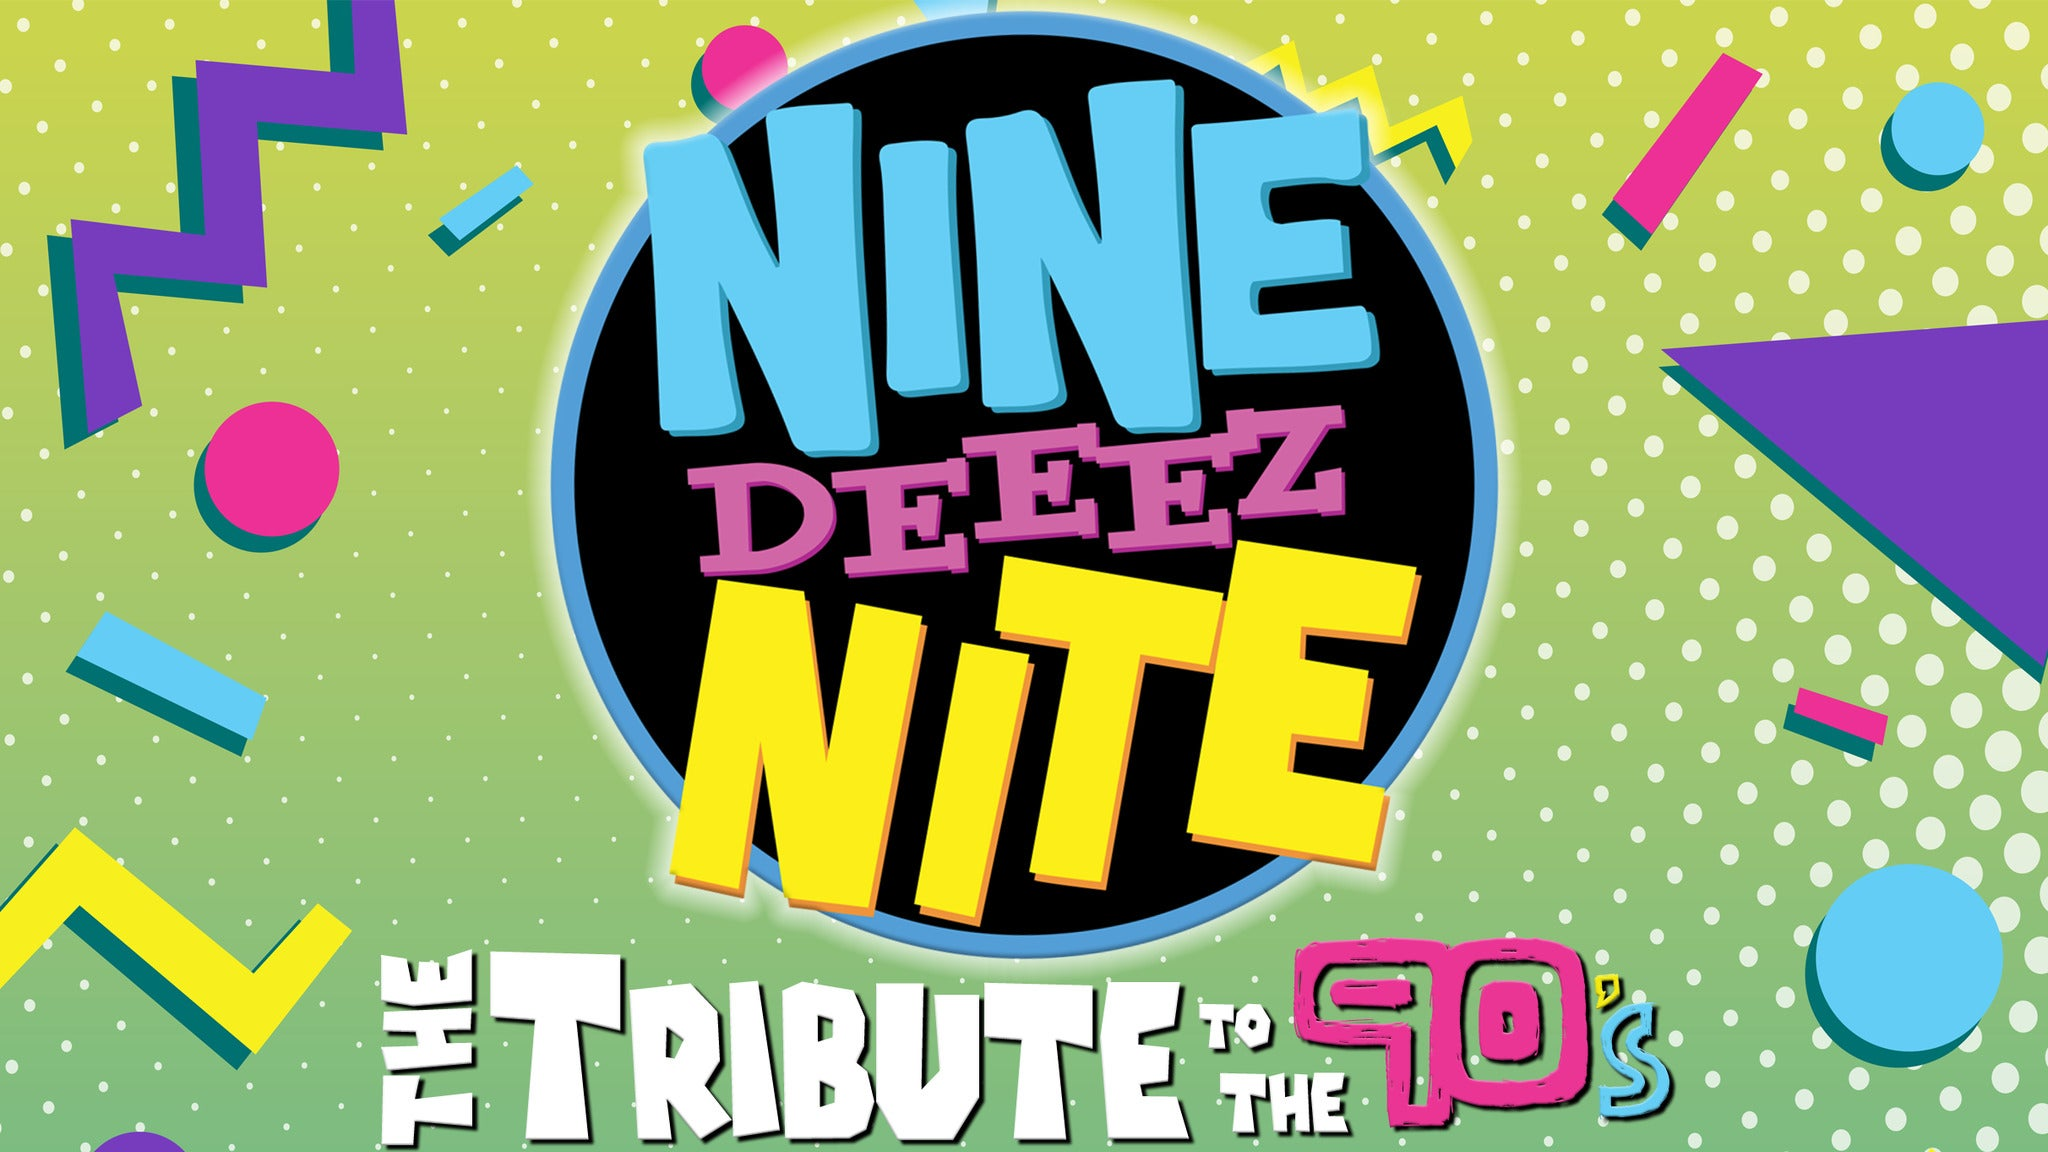 Nine Deeez Nite: The Tribute To The 90's